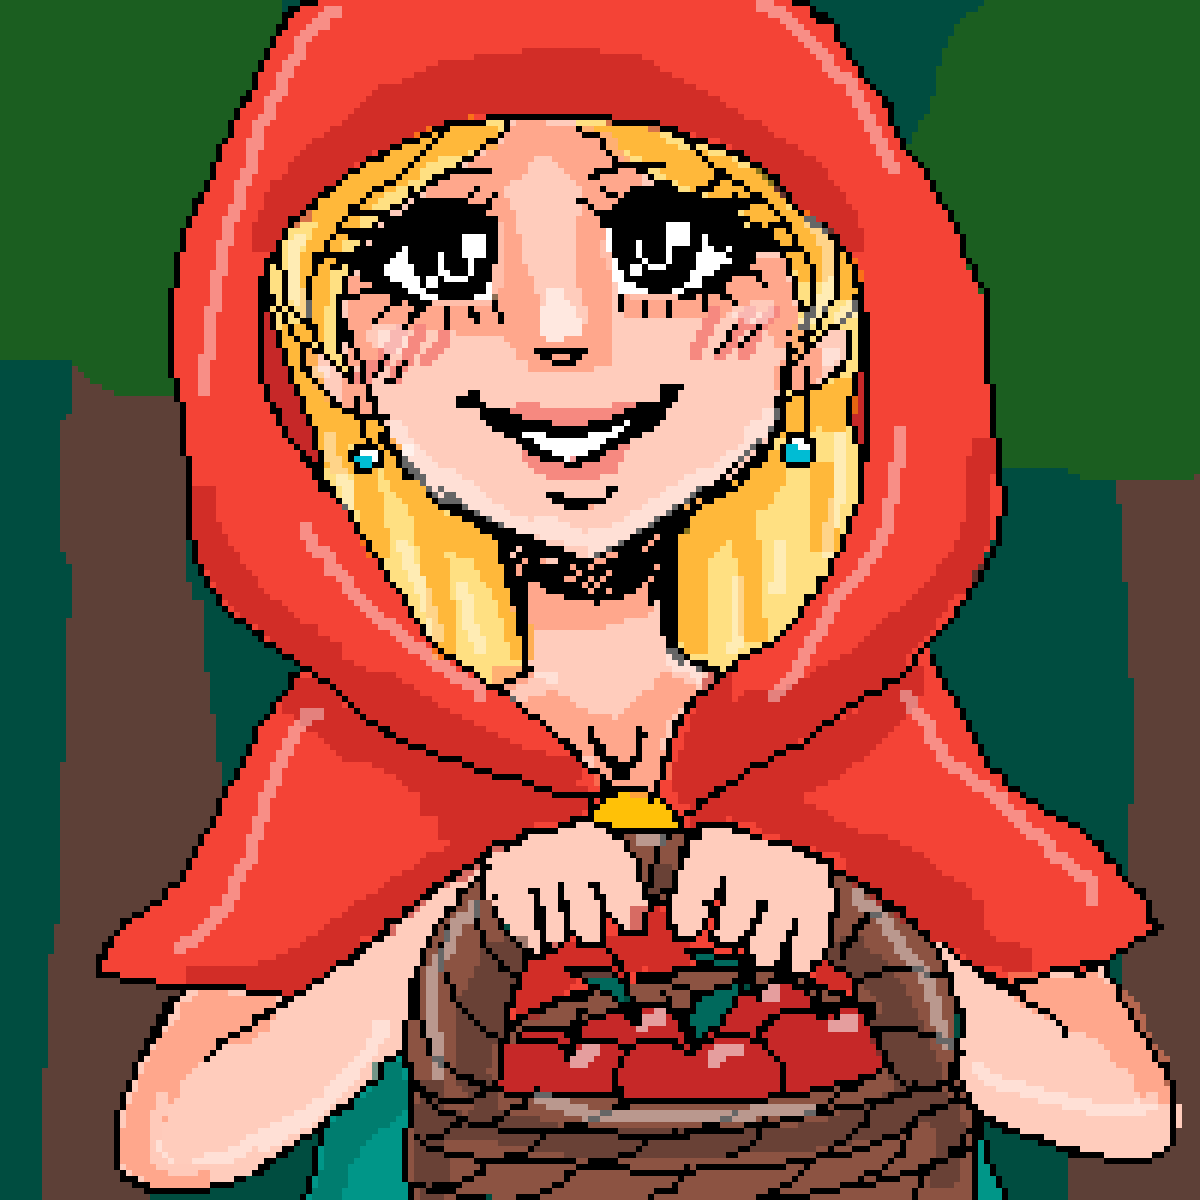 red riding hood sketch by alinamon